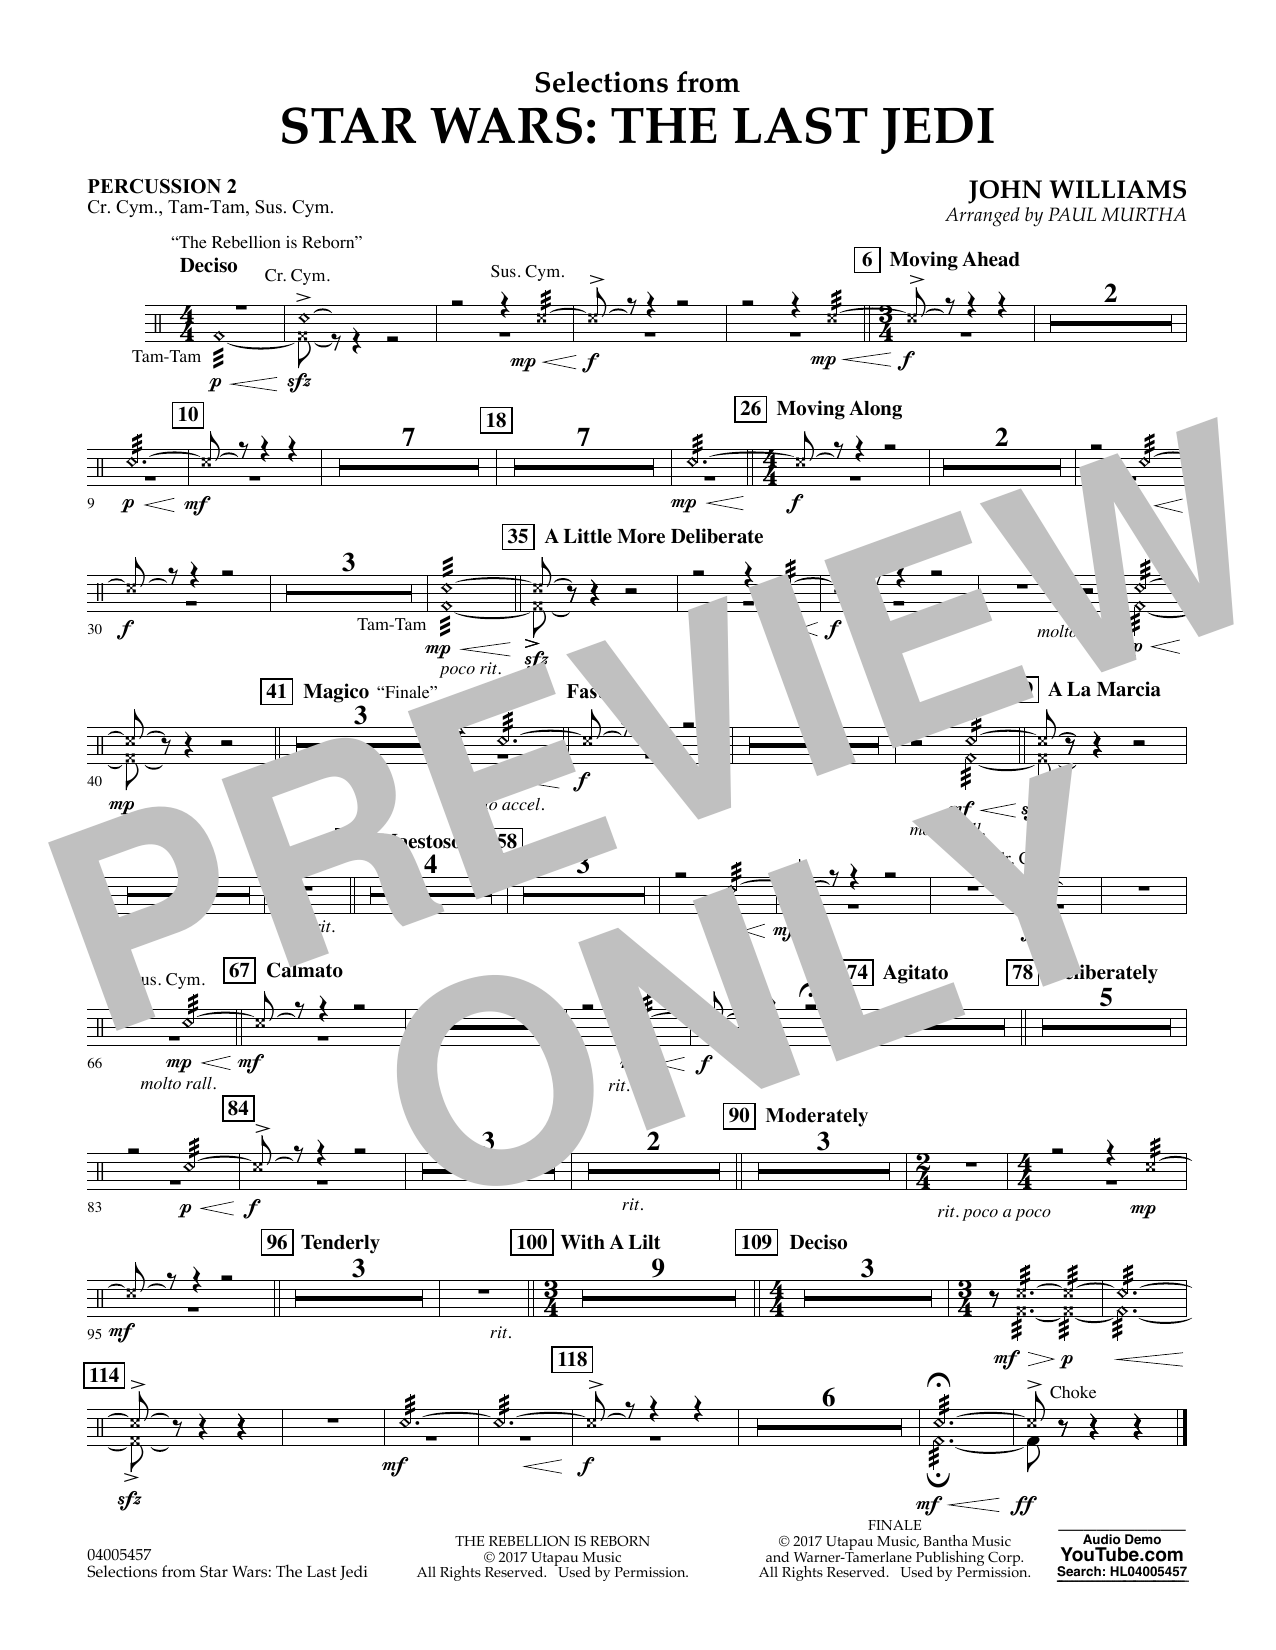 Selections from Star Wars: The Last Jedi - Percussion 2 (Flex-Band)